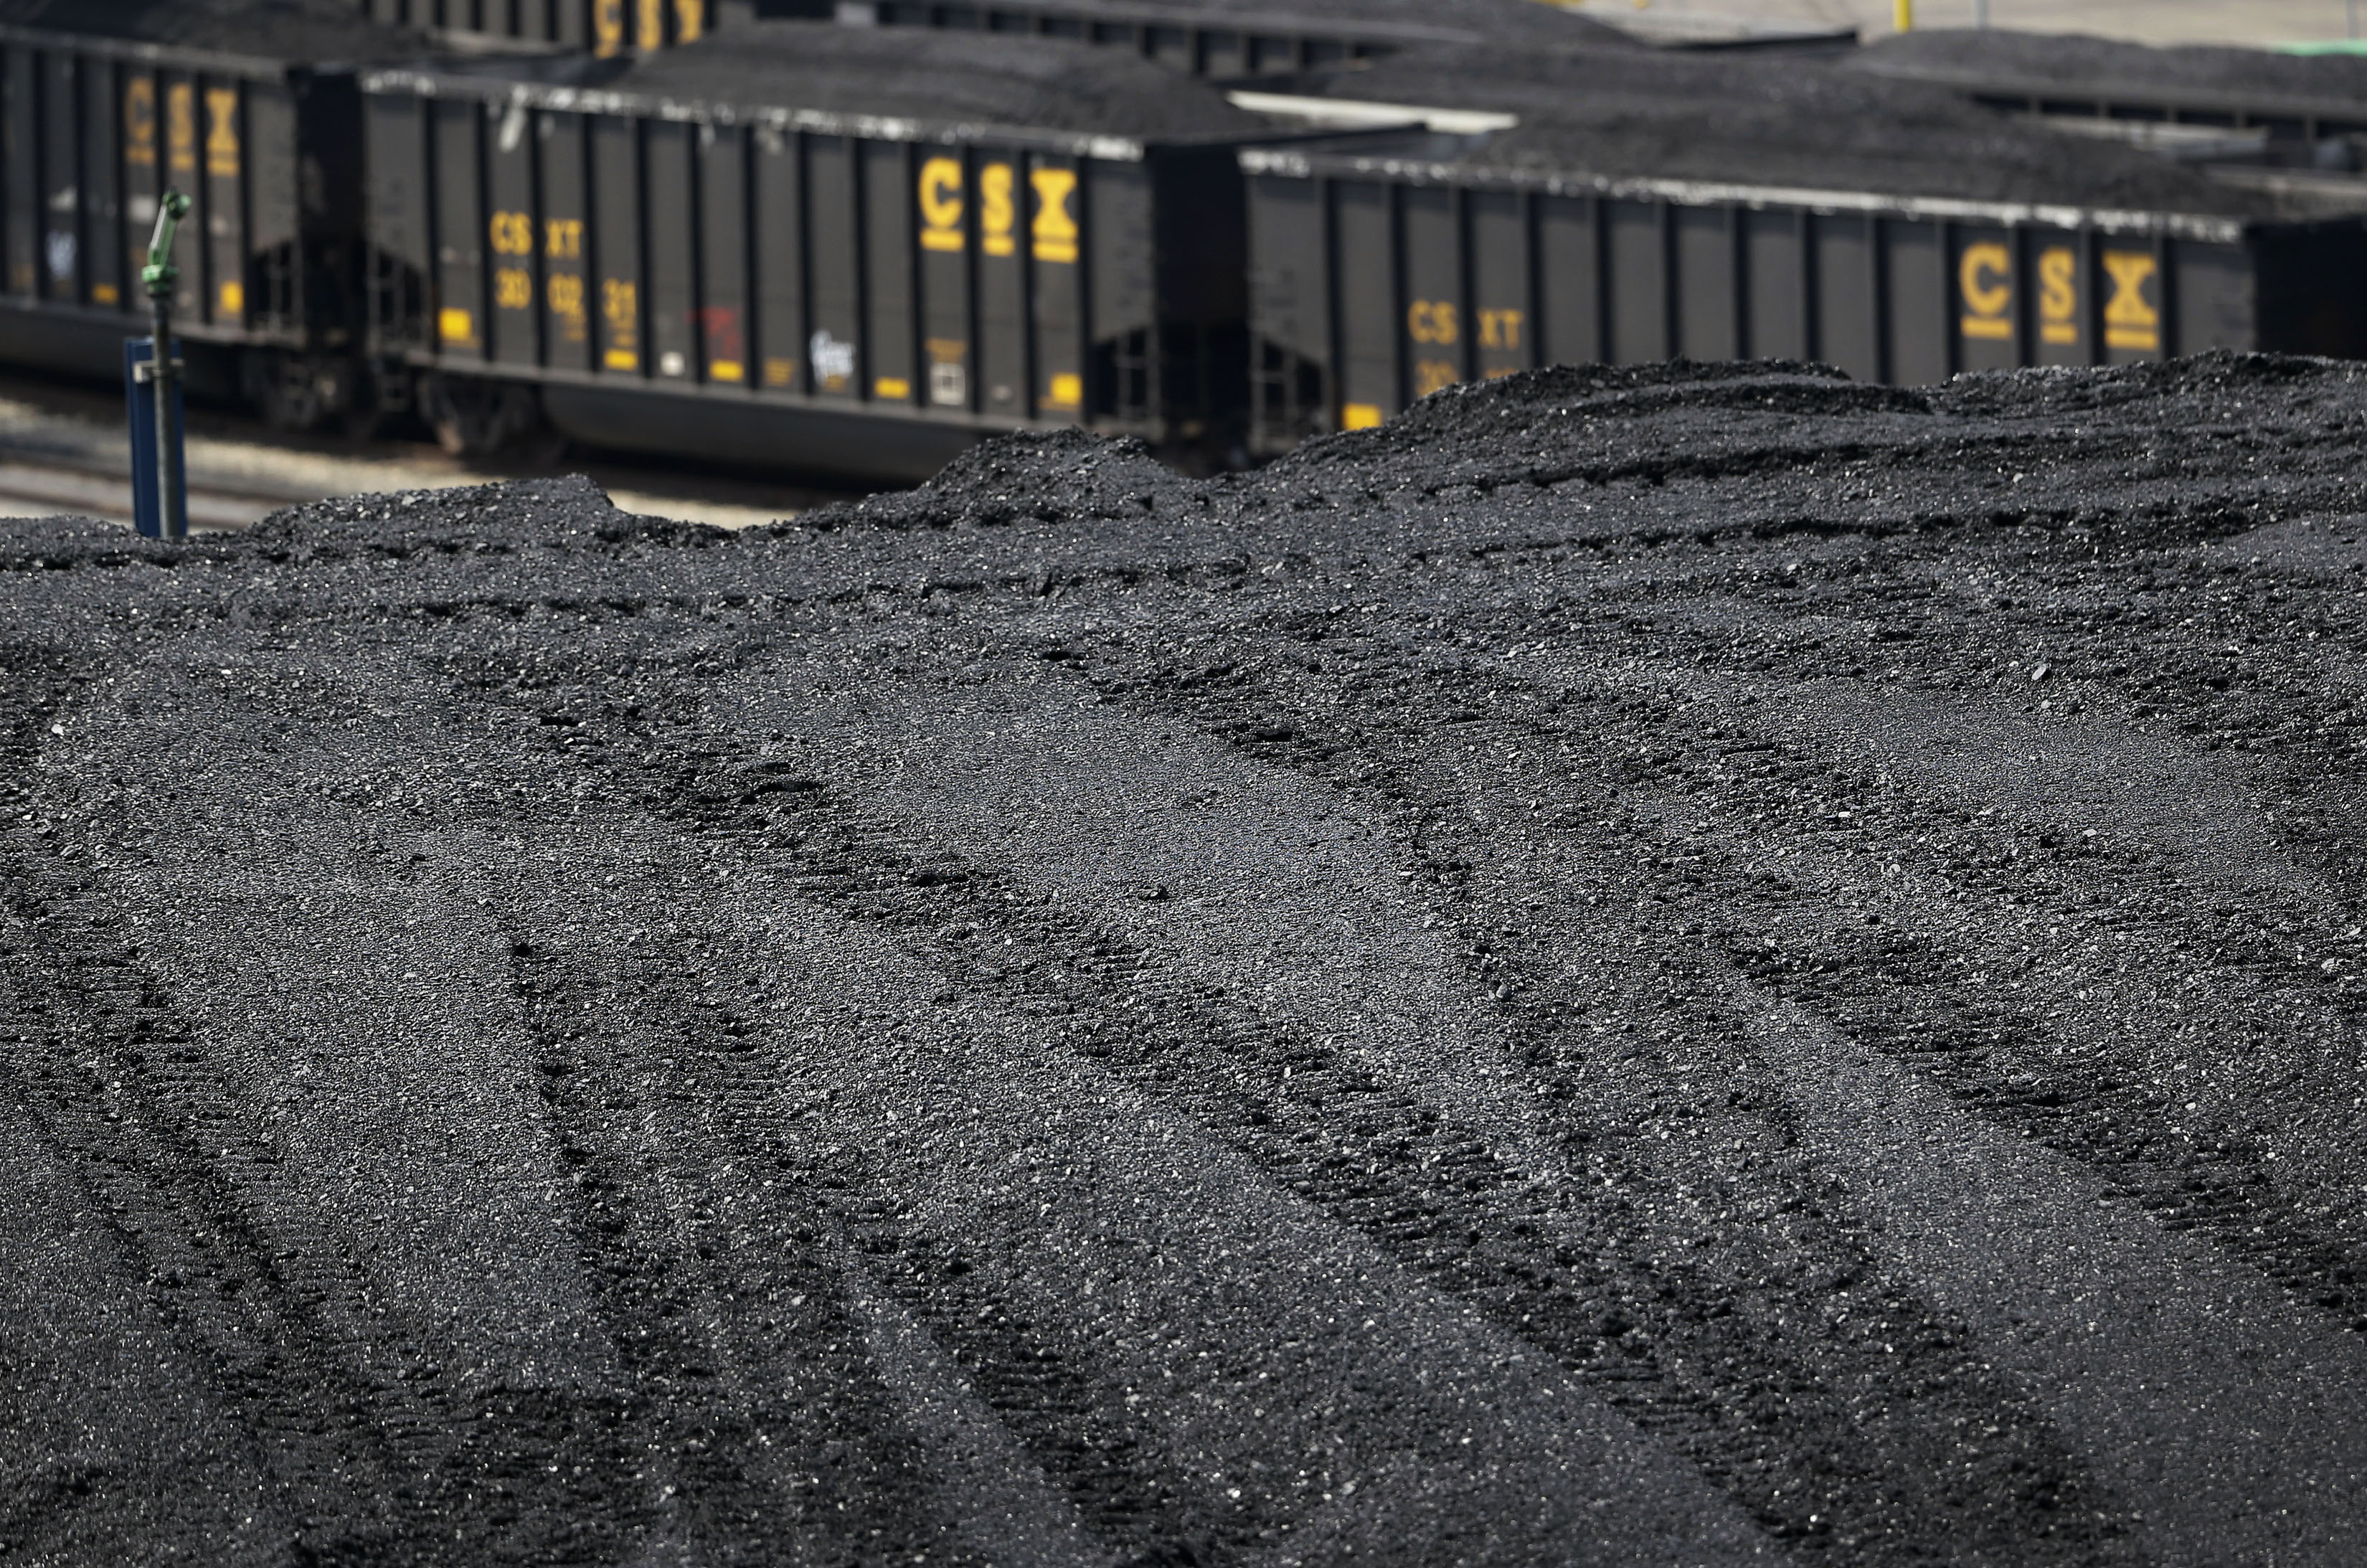 Obama Exporting Pollution In this May 22, 2014, photo, a large pile of coal sits in front of train cars carrying coal at Dominion Terminal Associates' coal terminal in Newport News, Va. Over the last six years, American energy companies have sent more coal than ever before to other parts of the world, in some cases to places with more lax environmental standards. As the Obama administration weans the U.S. off dirty fuels blamed for global warming, energy companies have been sending more of America's unwanted energy leftovers to other parts of the world, where they could create even more pollution.